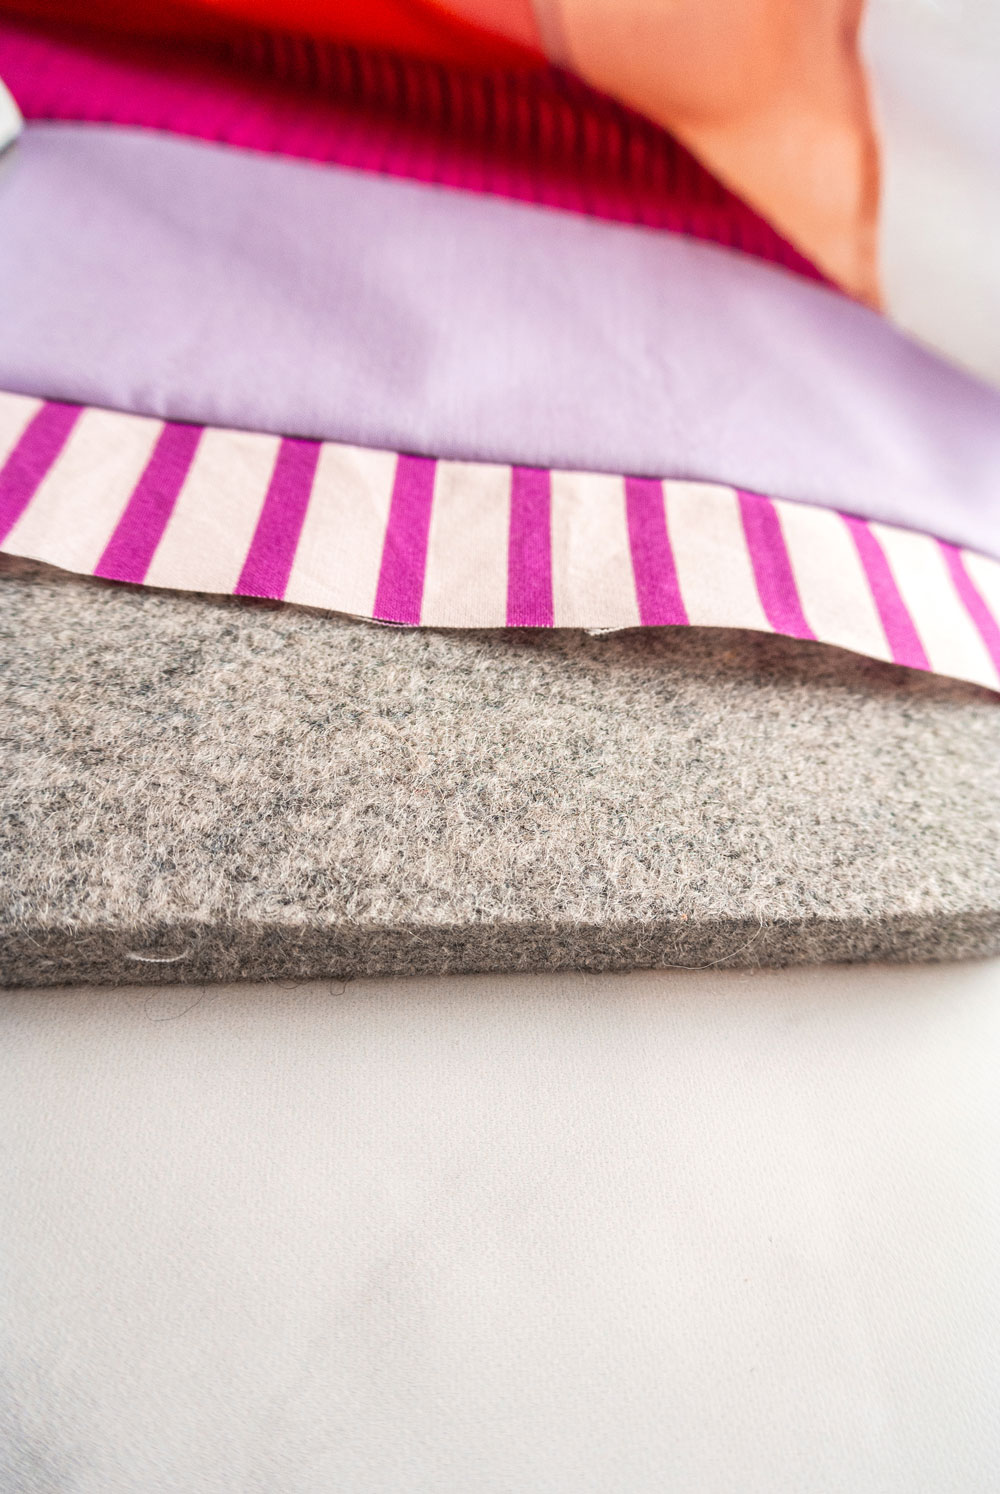 A wool pressing mat can be a wonderful tool in quilting. Portable, lightweight, and made of only natural fibers, these mats can also help iron fabric in half the time! suzyquilts.com #quilting #quilt #sewing